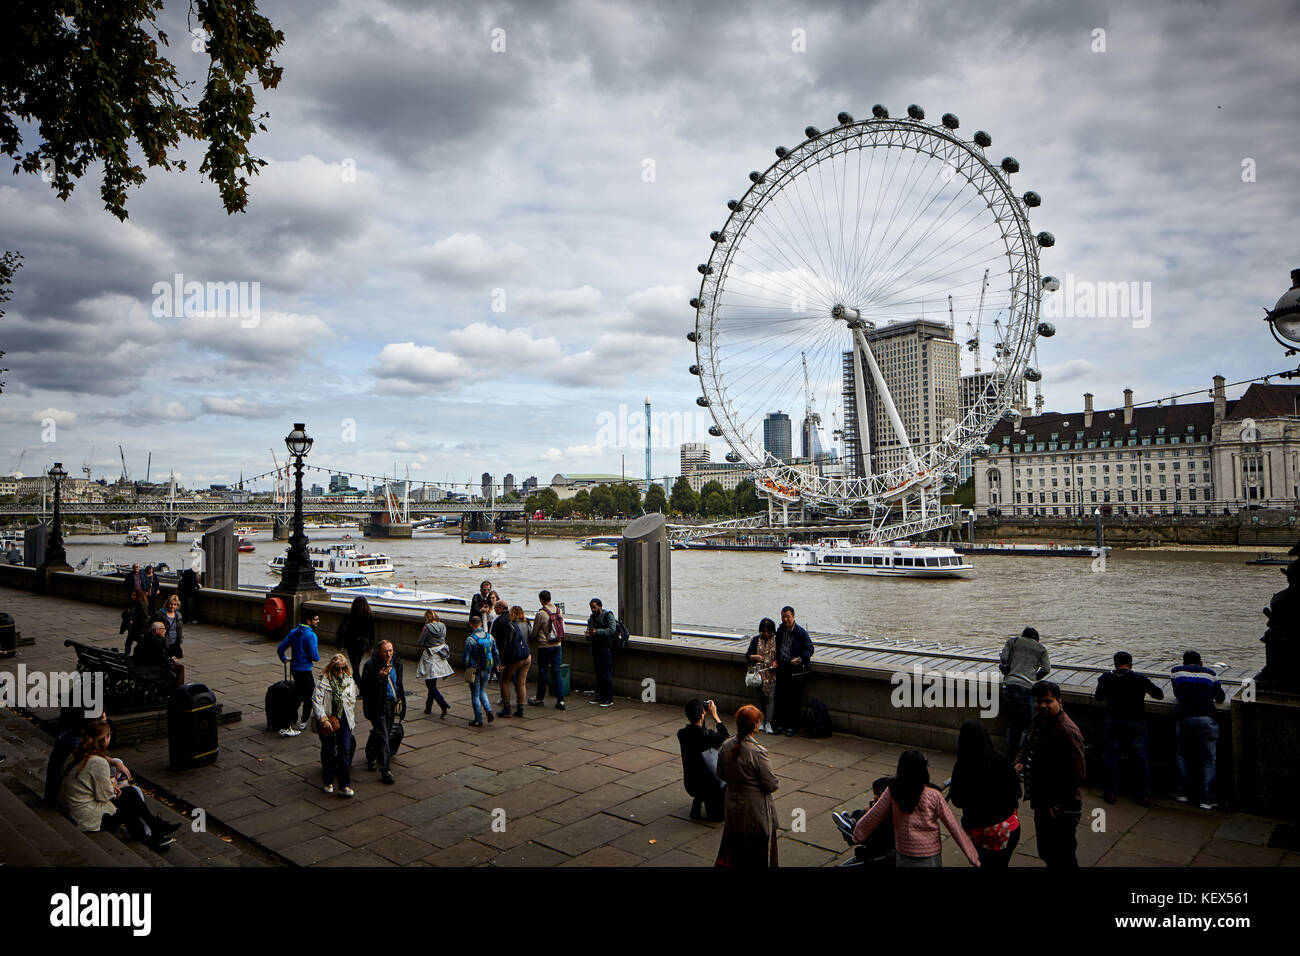 Merlin Entertainments London Eye giant Ferris wheel on the South Bank of the River Thames in London the capital - Stock Image